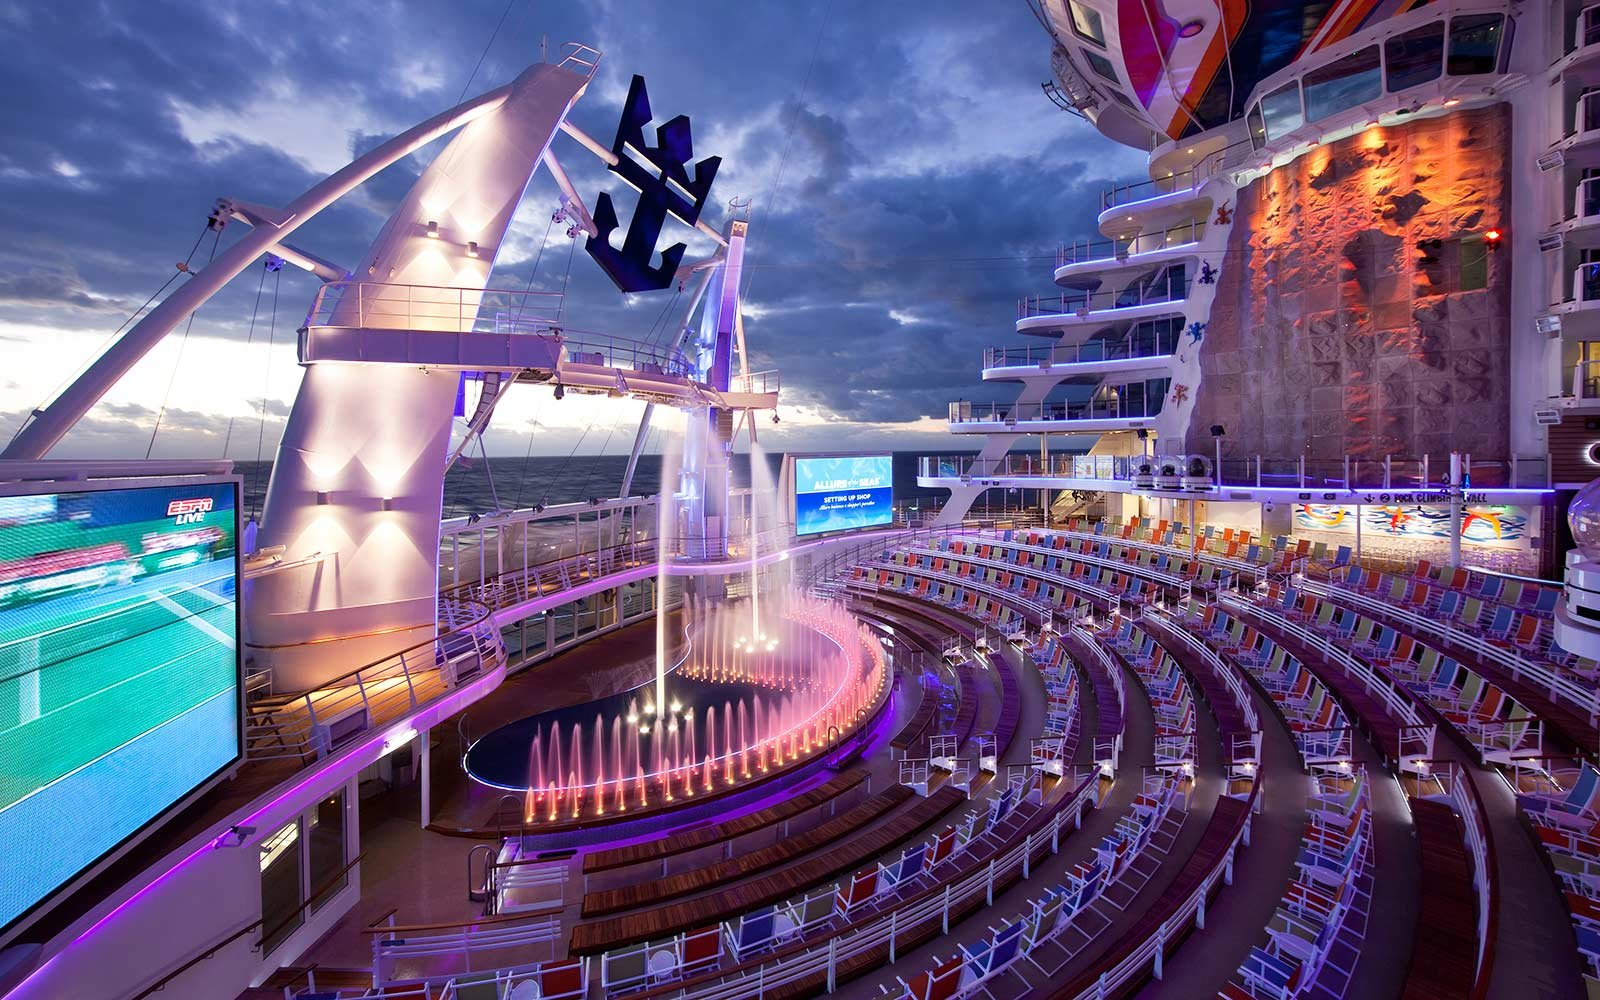 Zip Line Seat >> Five Things to Know About Royal Caribbean International's Allure of the Seas Cruise Ship ...